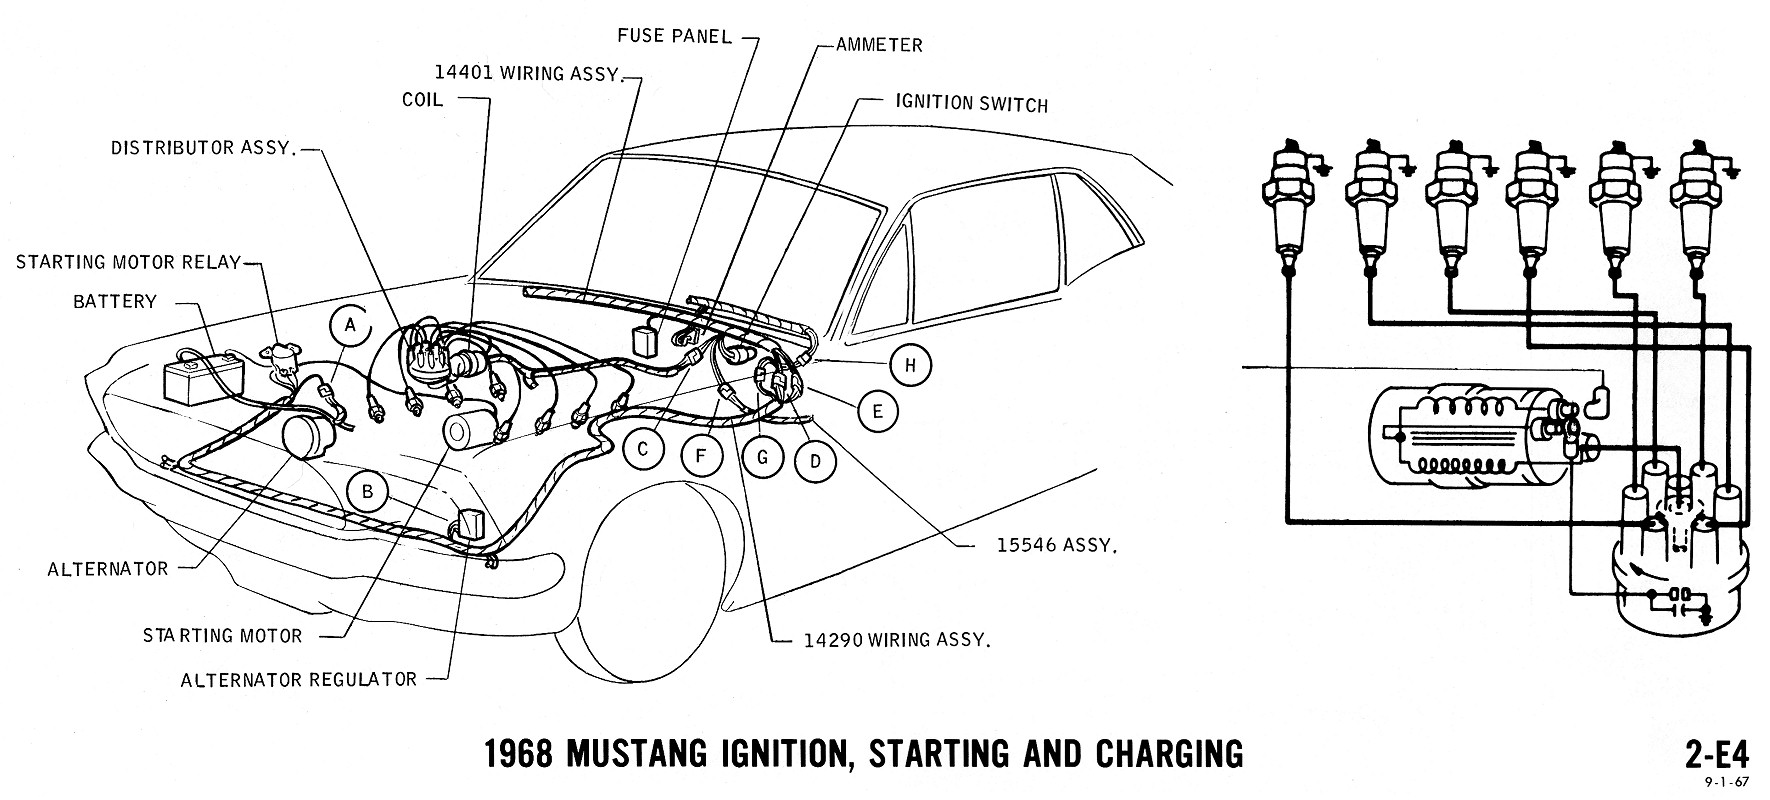 1968 mustang wiring diagram ignition starting charging 2 1968 mustang wiring diagrams and vacuum schematics average joe 1968 mustang ignition wiring diagram at bakdesigns.co